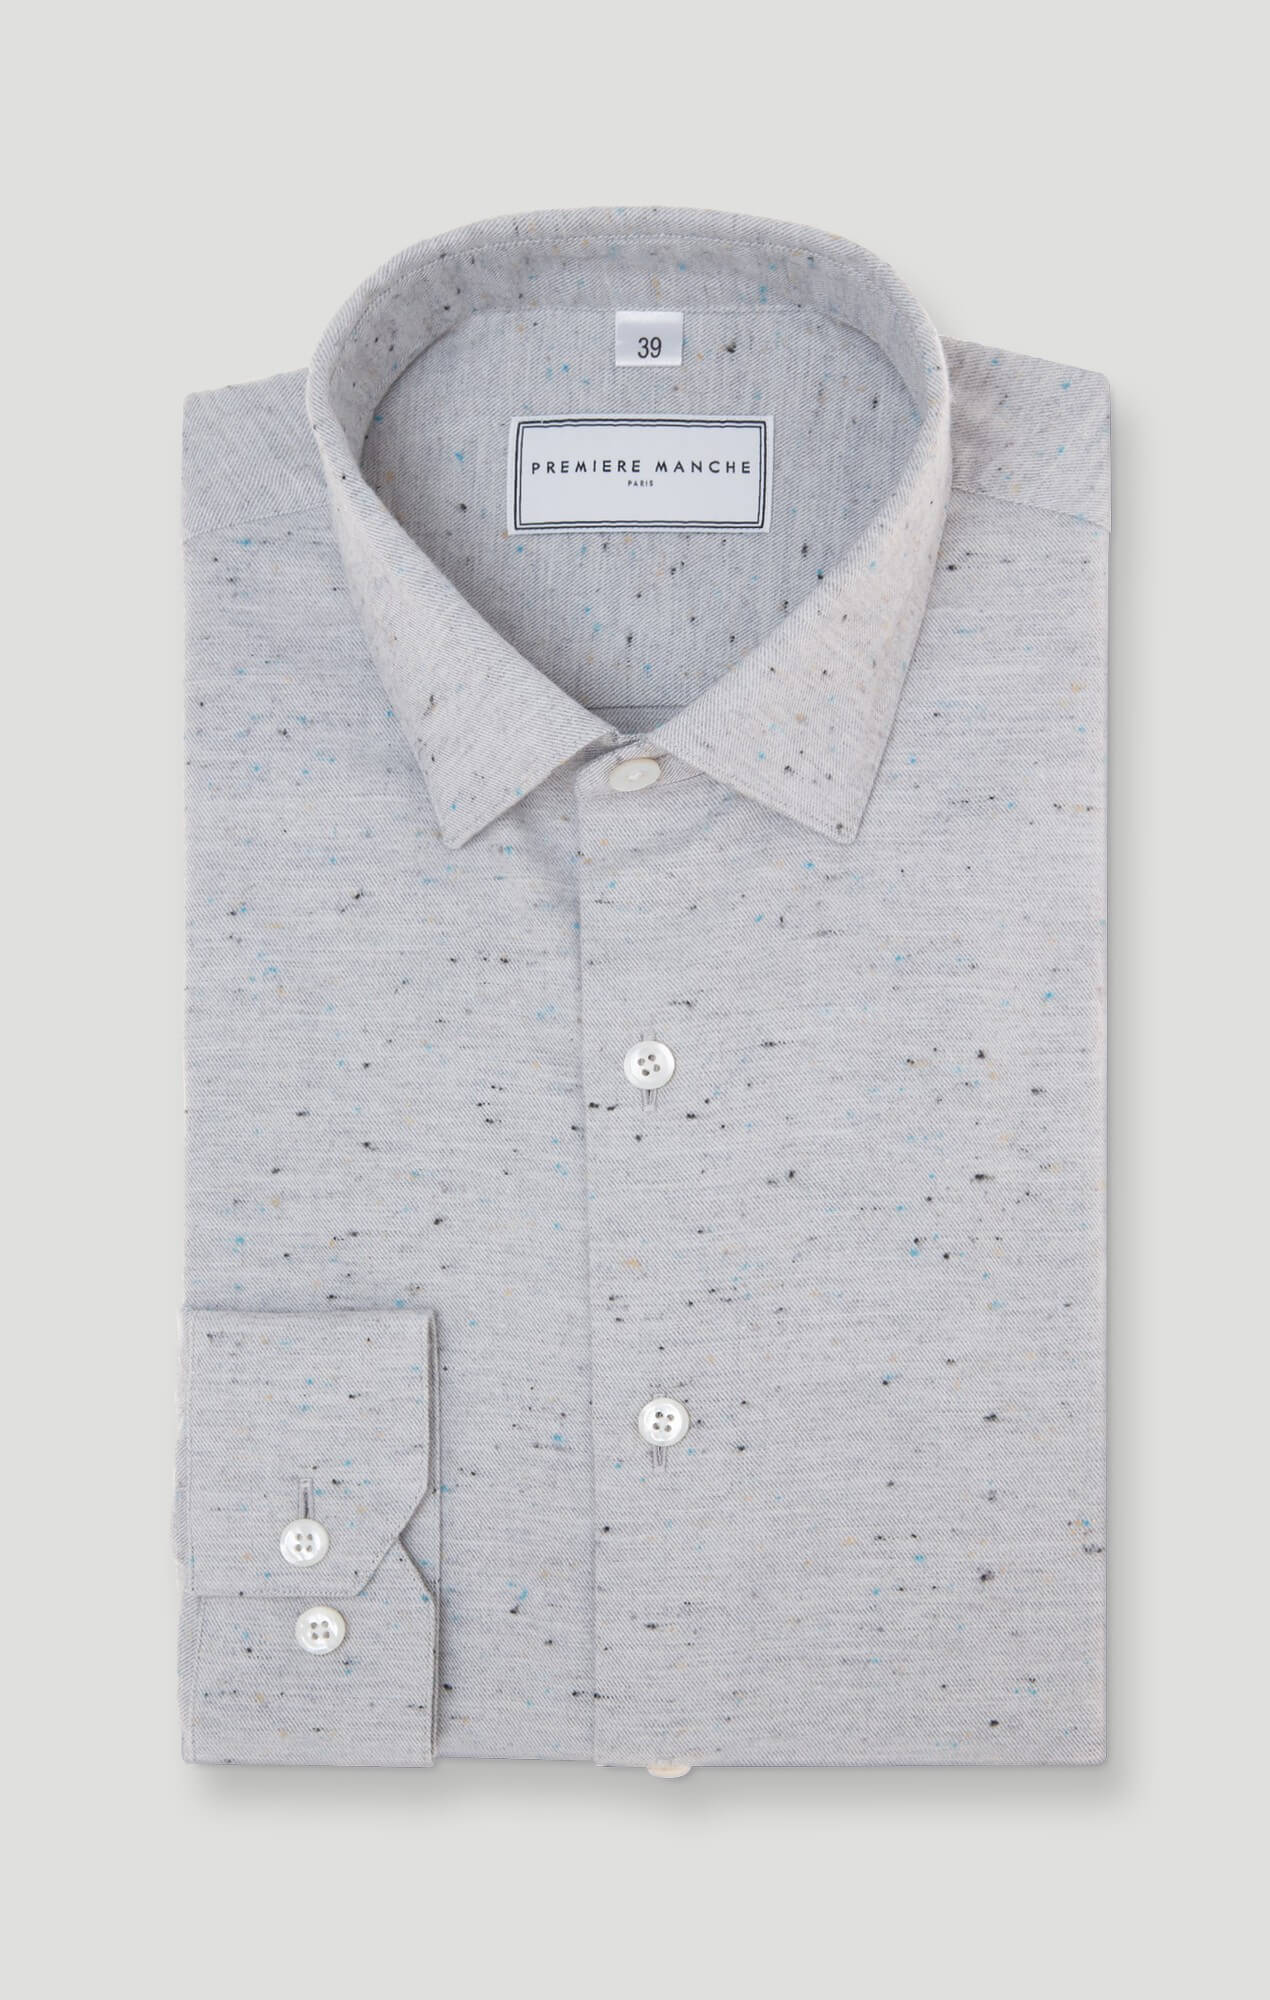 Grey shirt with micro dots